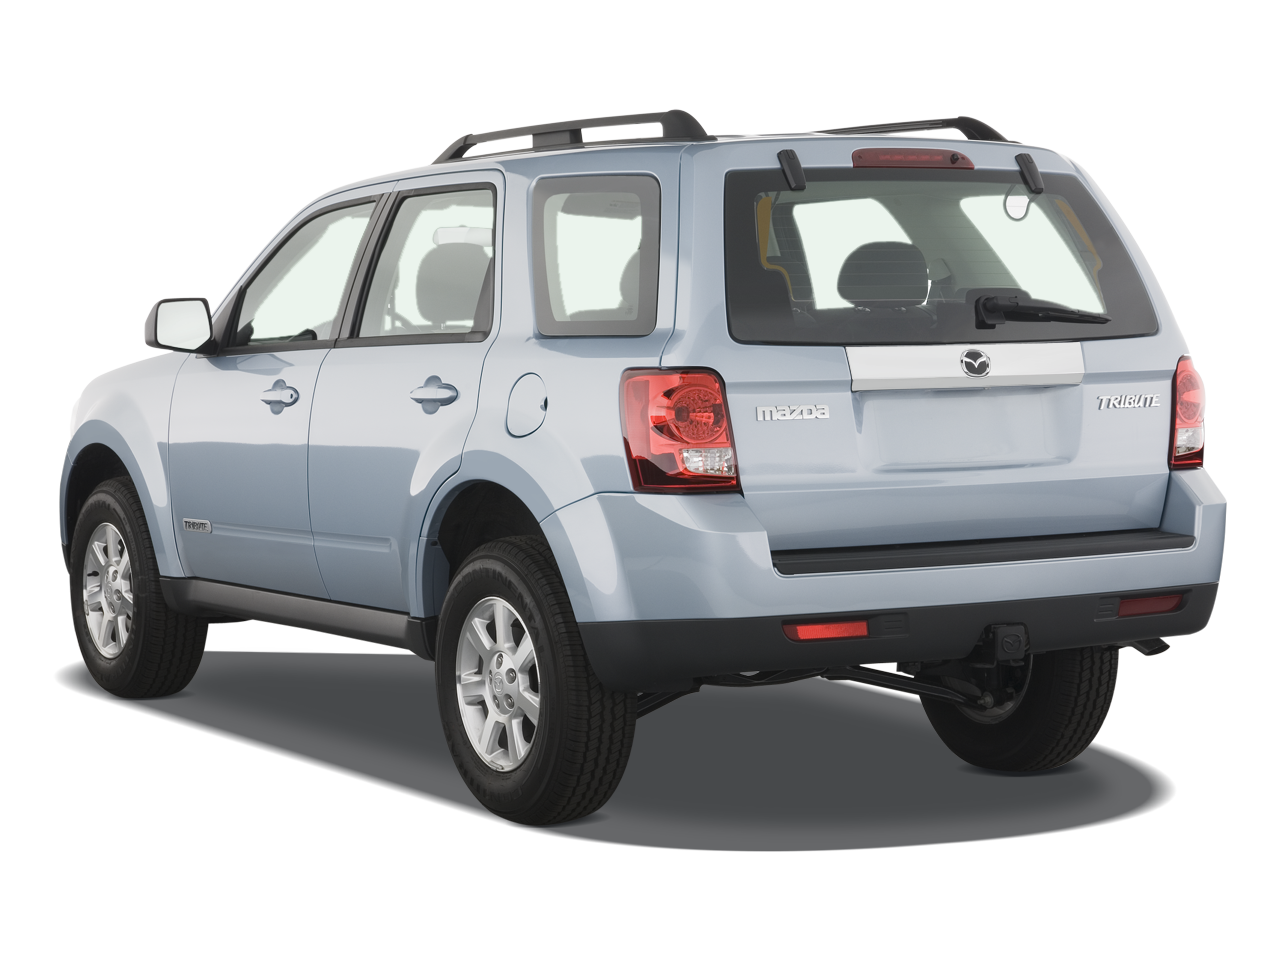 2008 Mazda Tribute Hybrid Latest News Auto Show Coverage